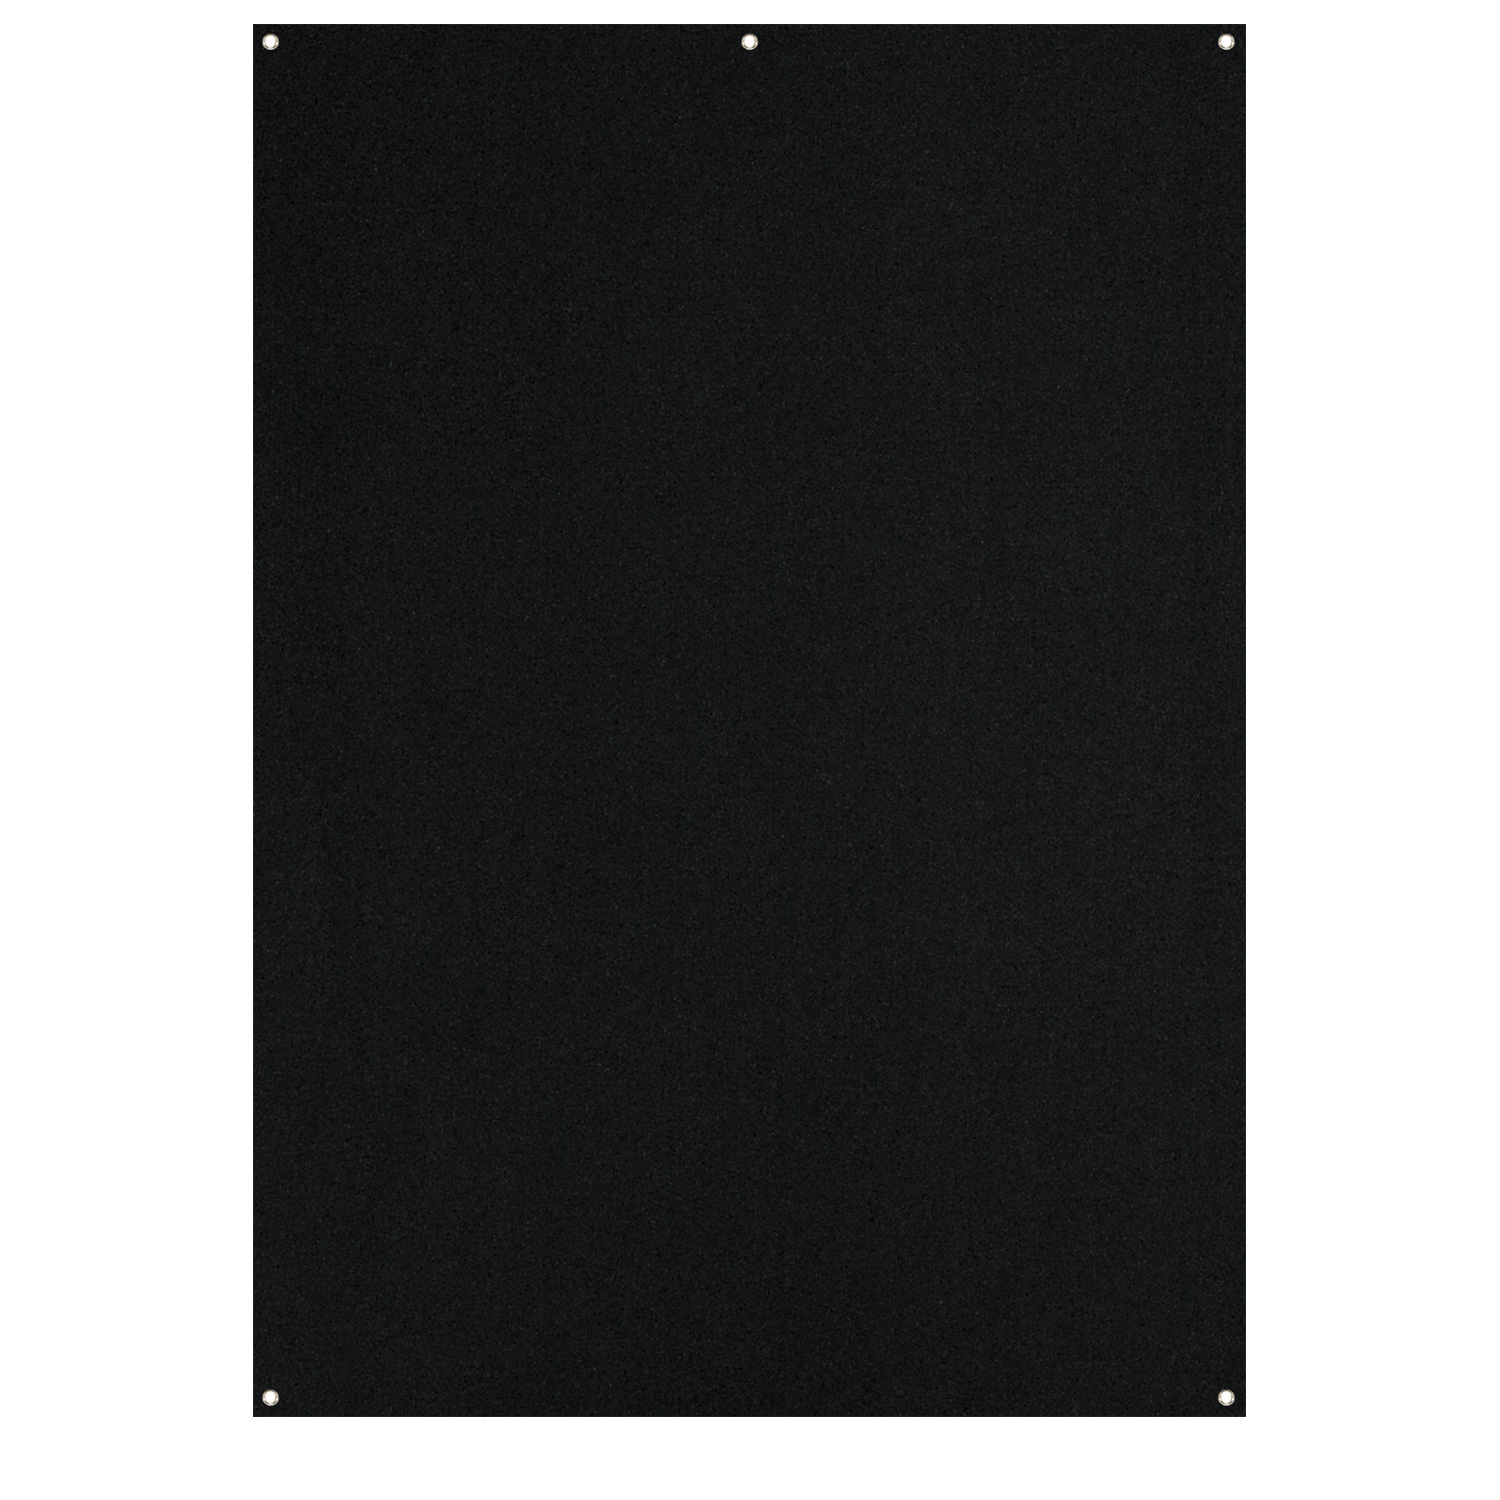 X-Drop Wrinkle-Resistant Backdrop - Rich Black (5' x 7')